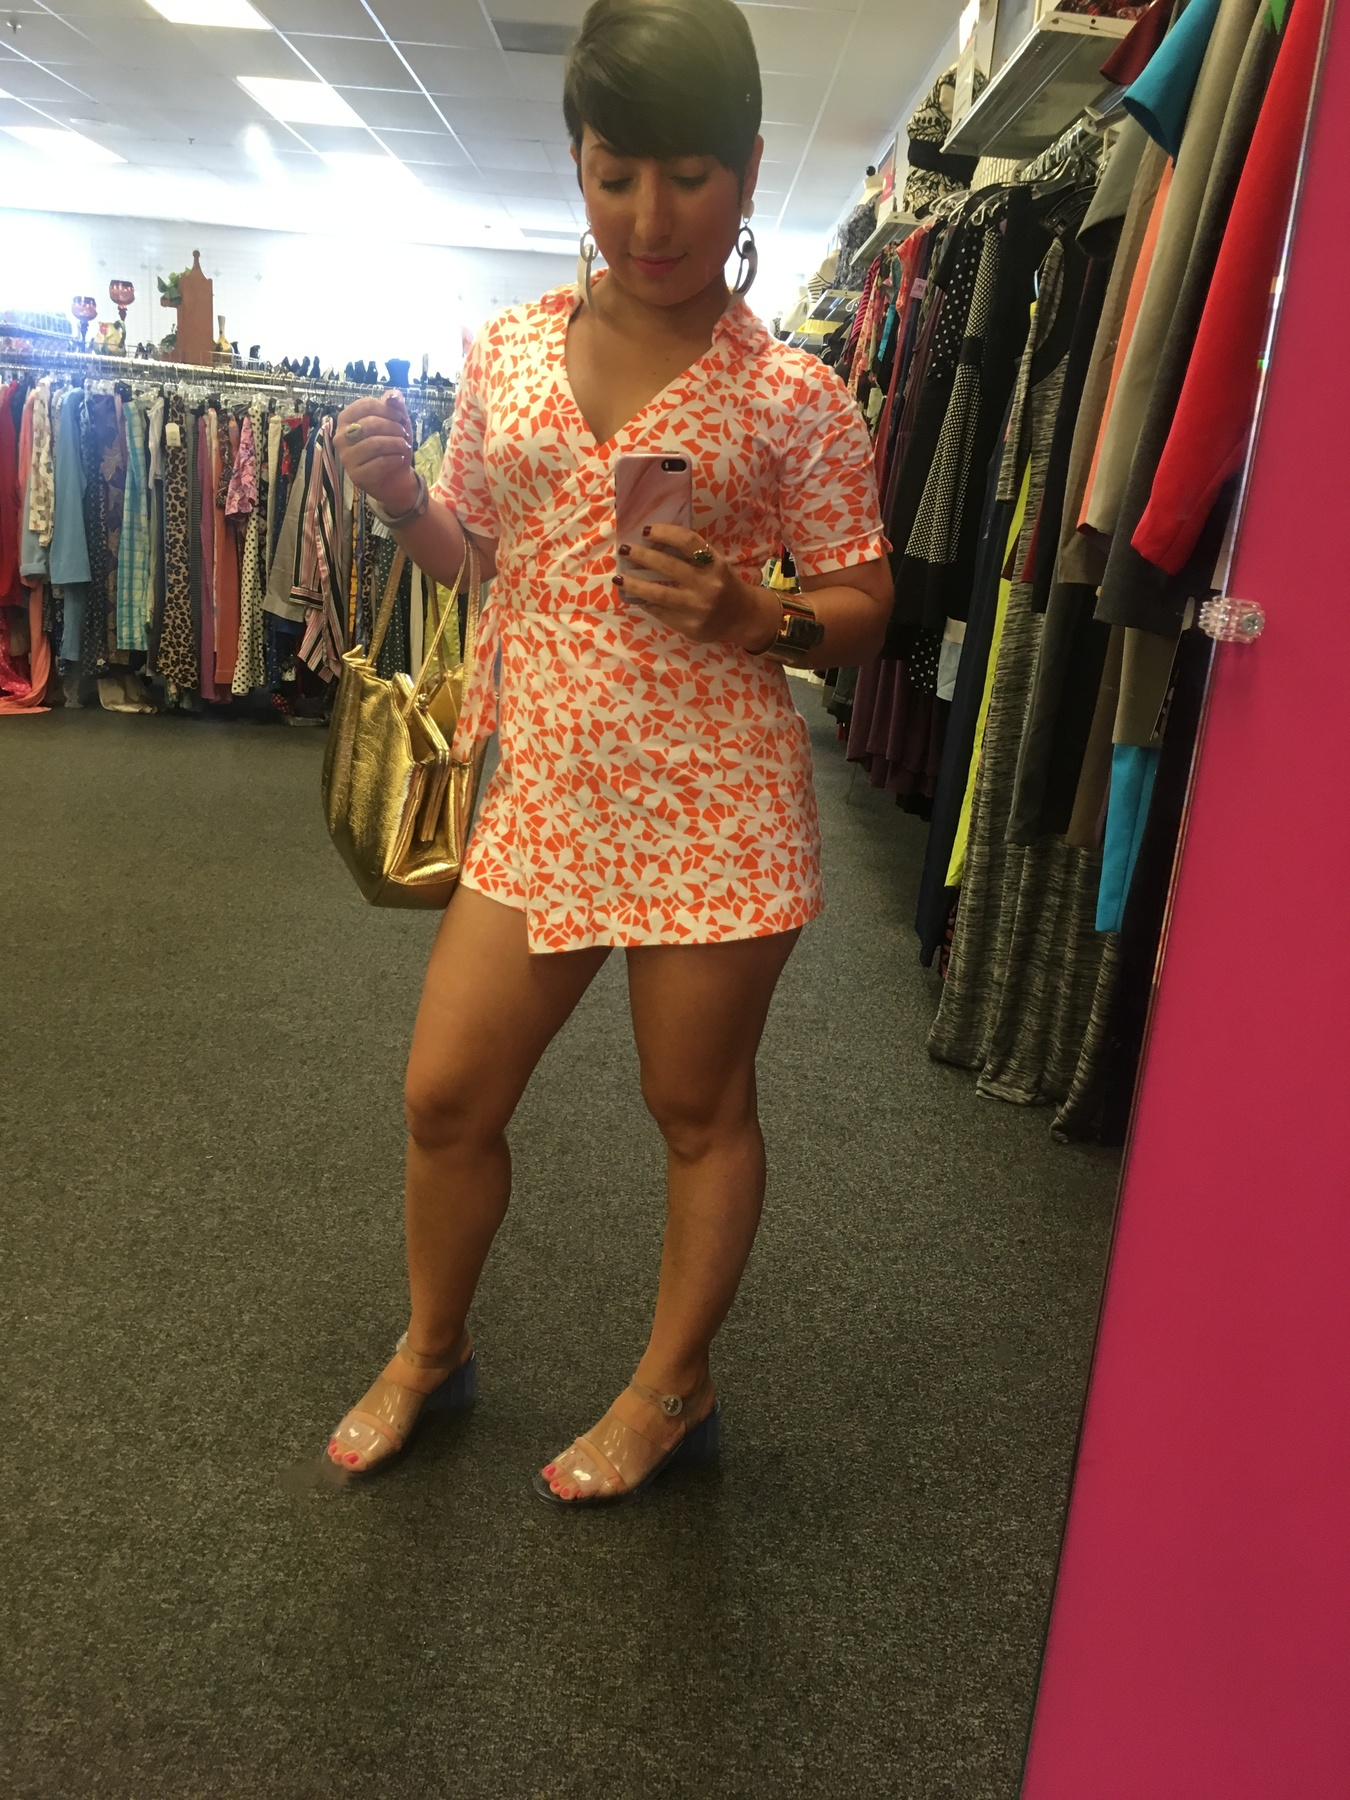 Carolyn's outfit found at Goodwill